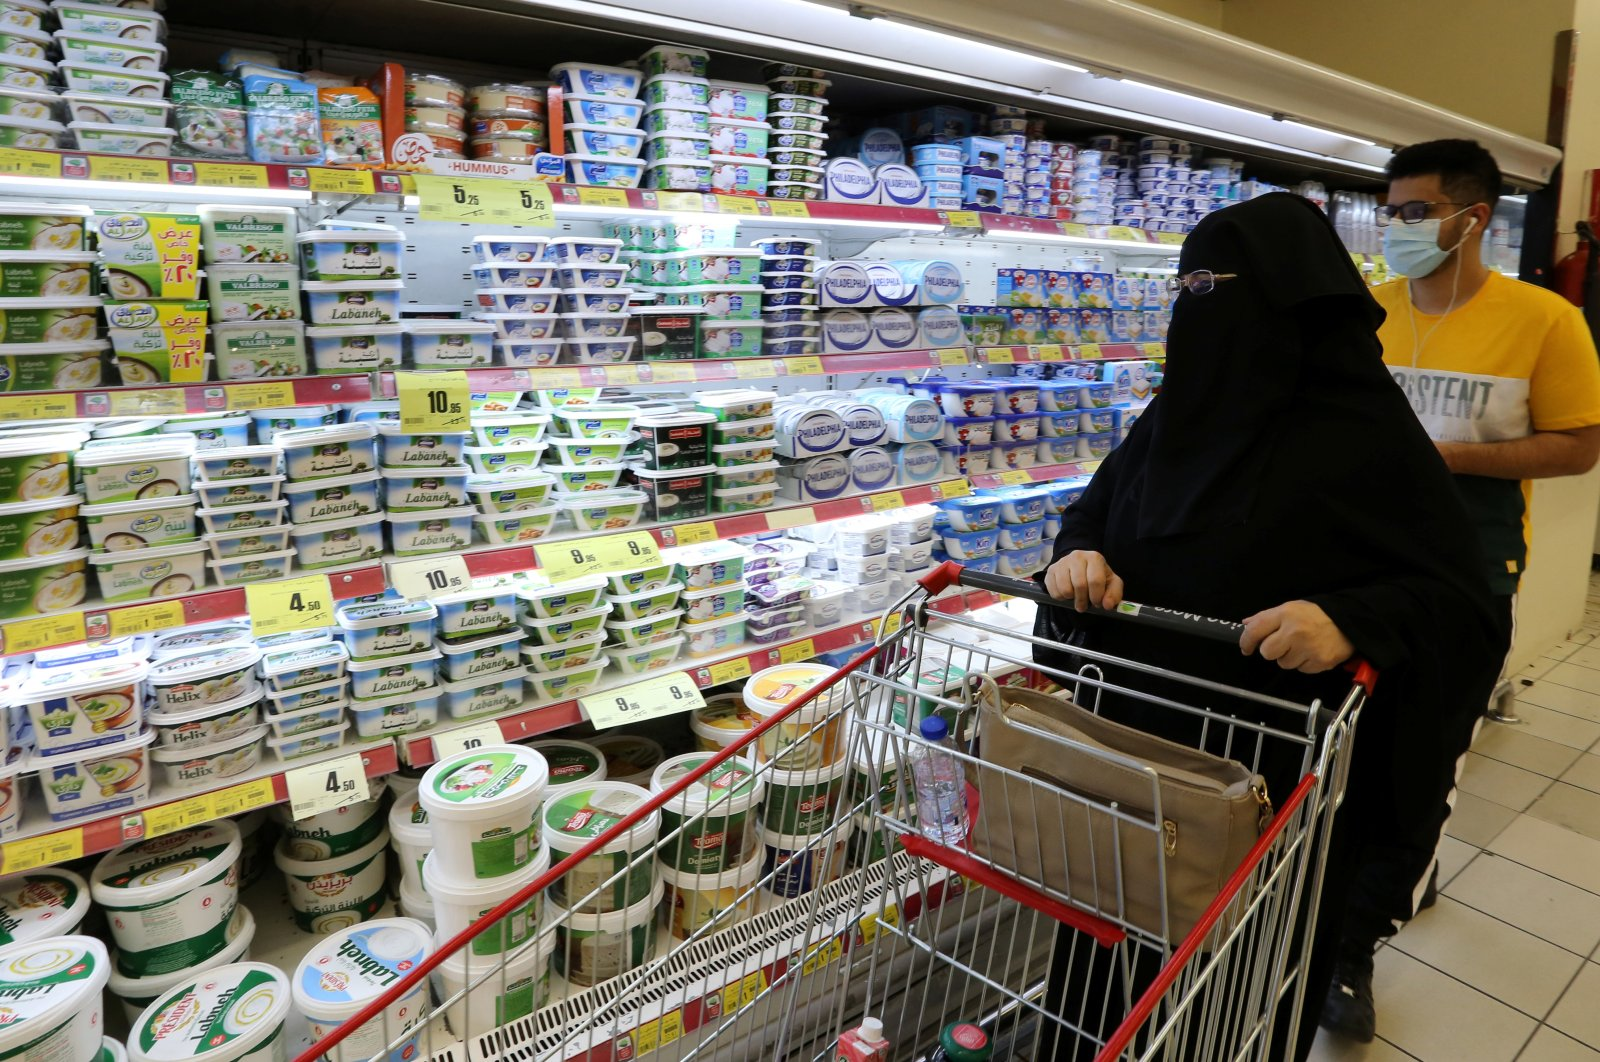 A Saudi woman looks at the dairy products in a supermarket in Riyadh, Saudi Arabia, Oct. 18, 2020. (Reuters Photo)